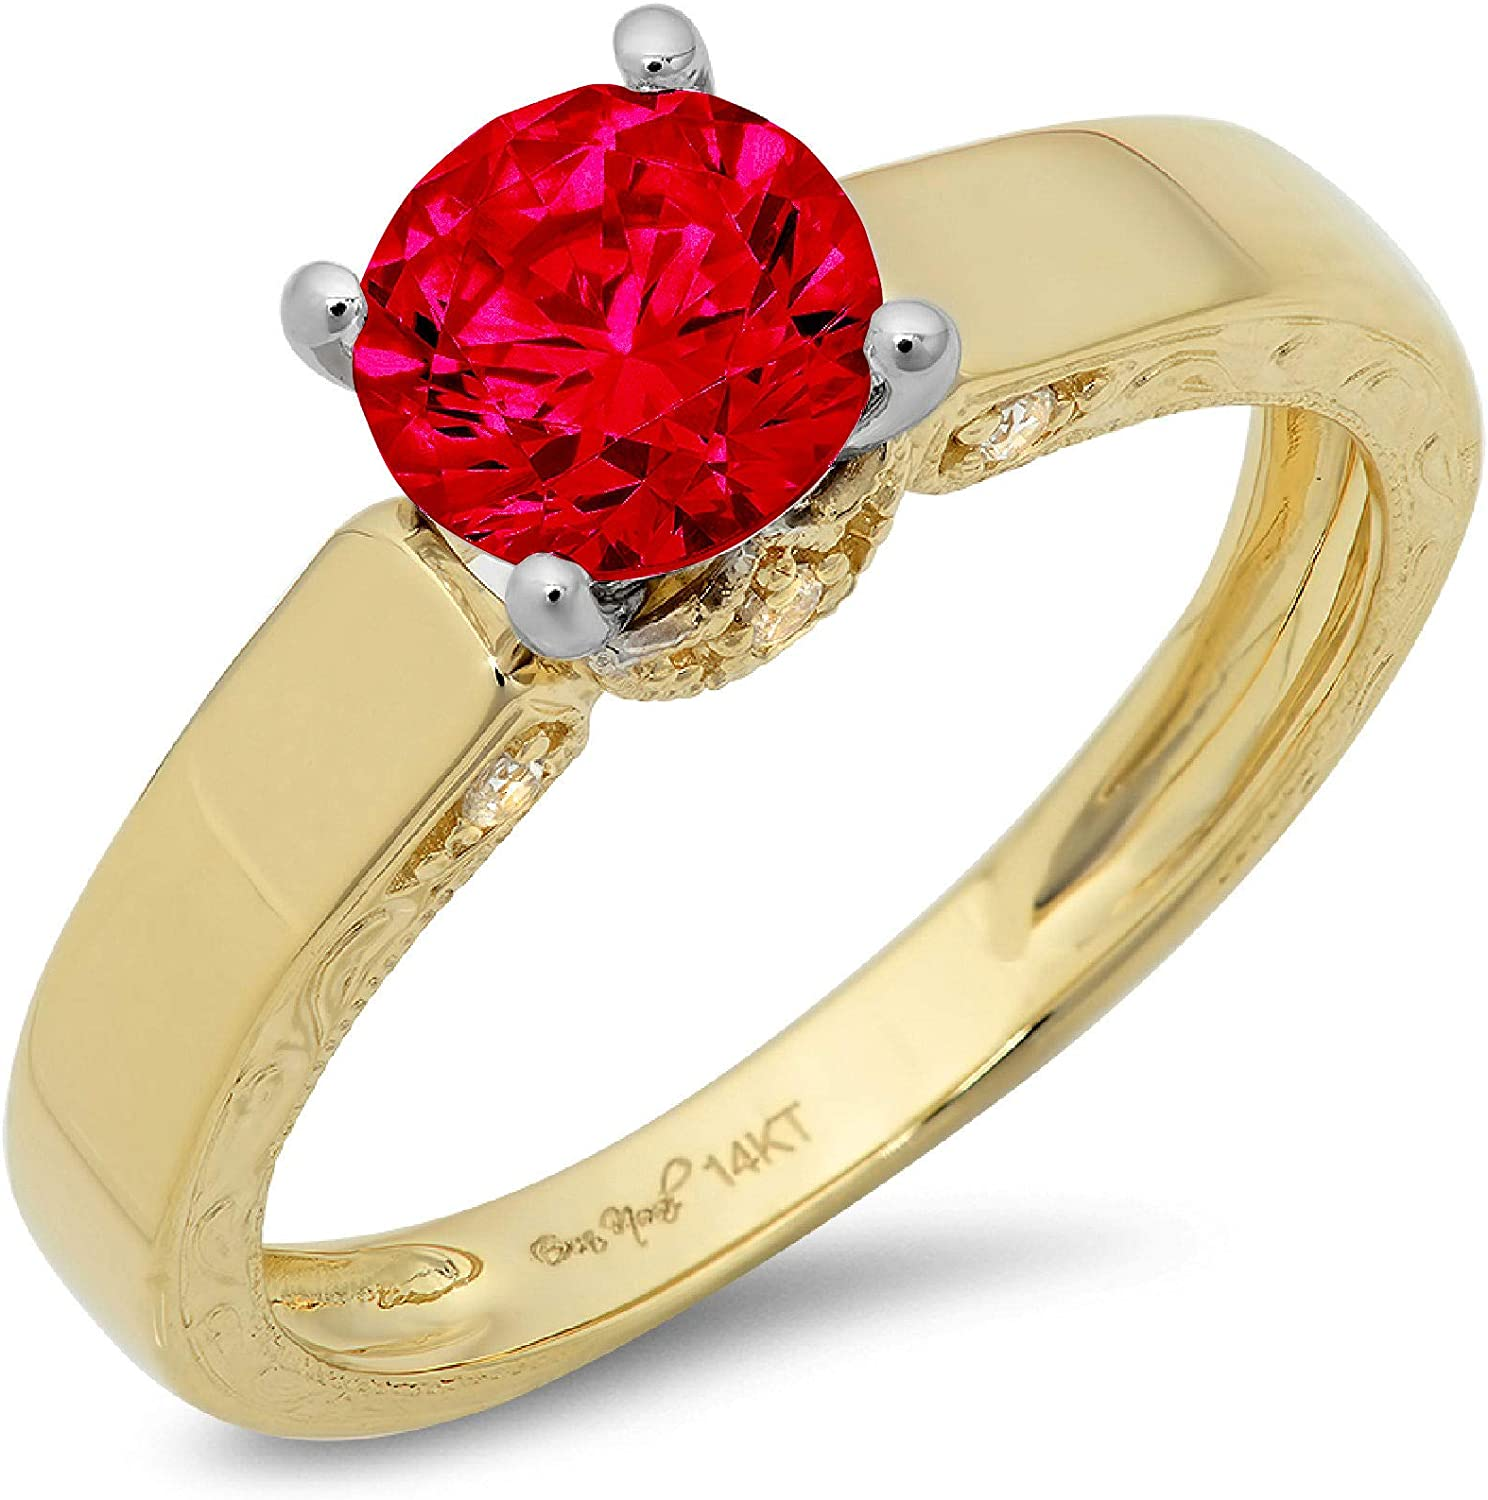 1.70ct Brilliant Round Cut Solitaire Genuine Flawless Simulated Ruby Gemstone Engagement Promise Anniversary Bridal Wedding Accent Ring Solid 18K 2 tone Gold